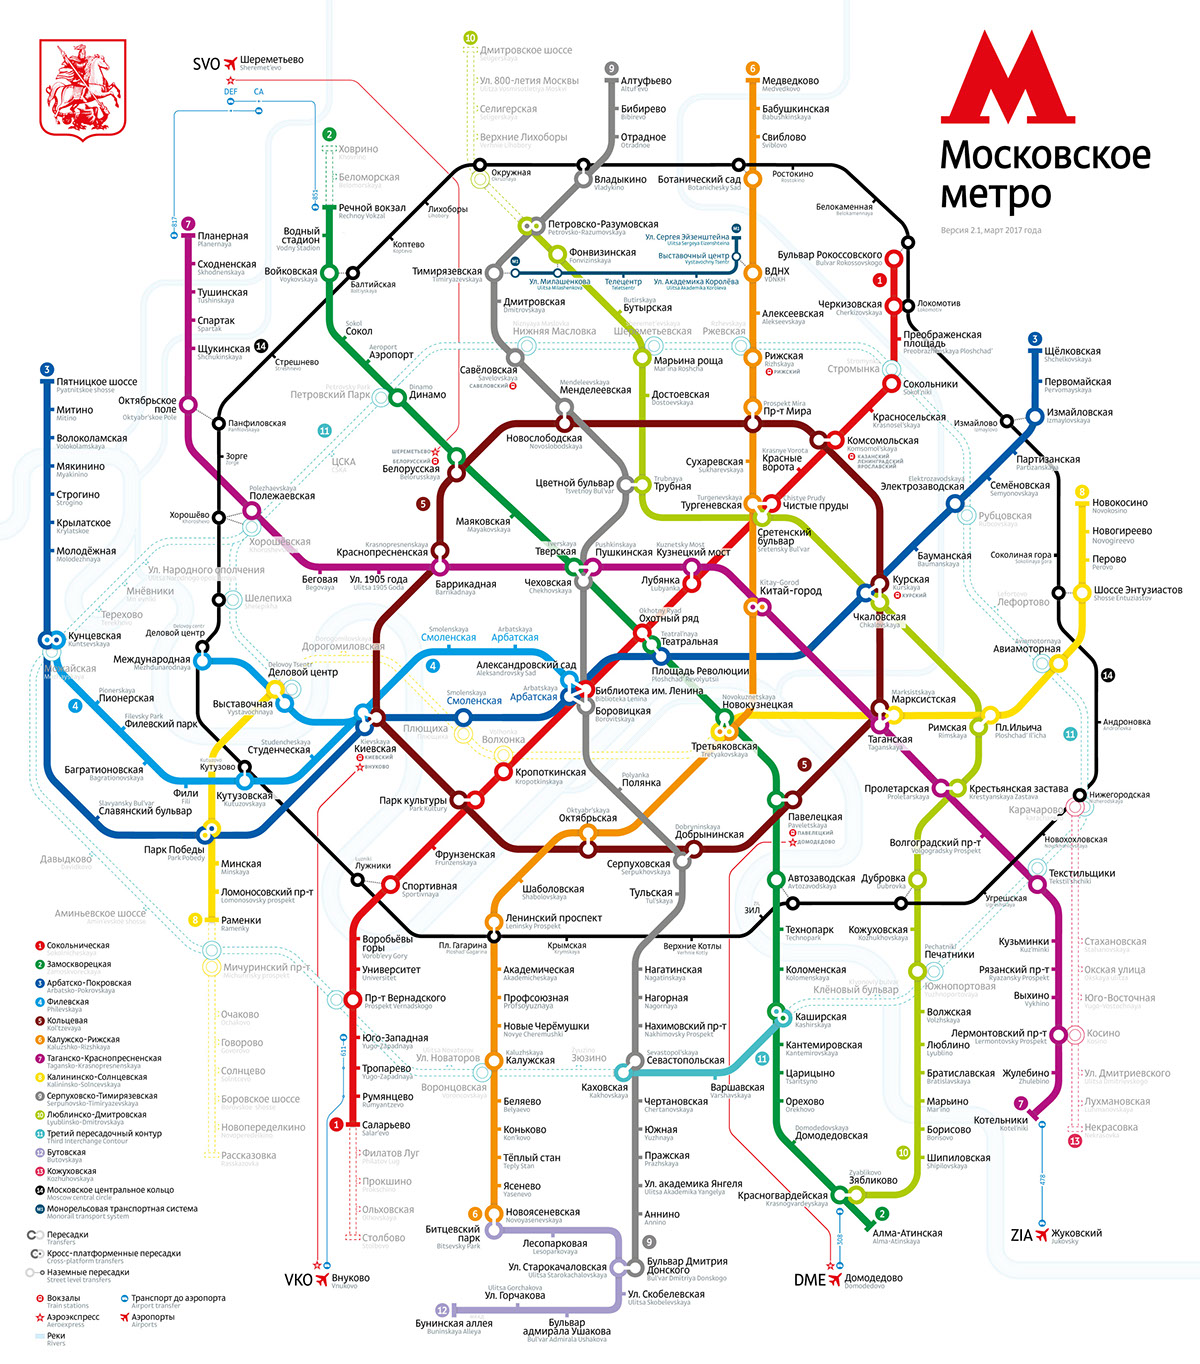 Moscow metro map v 2.1 on Behance